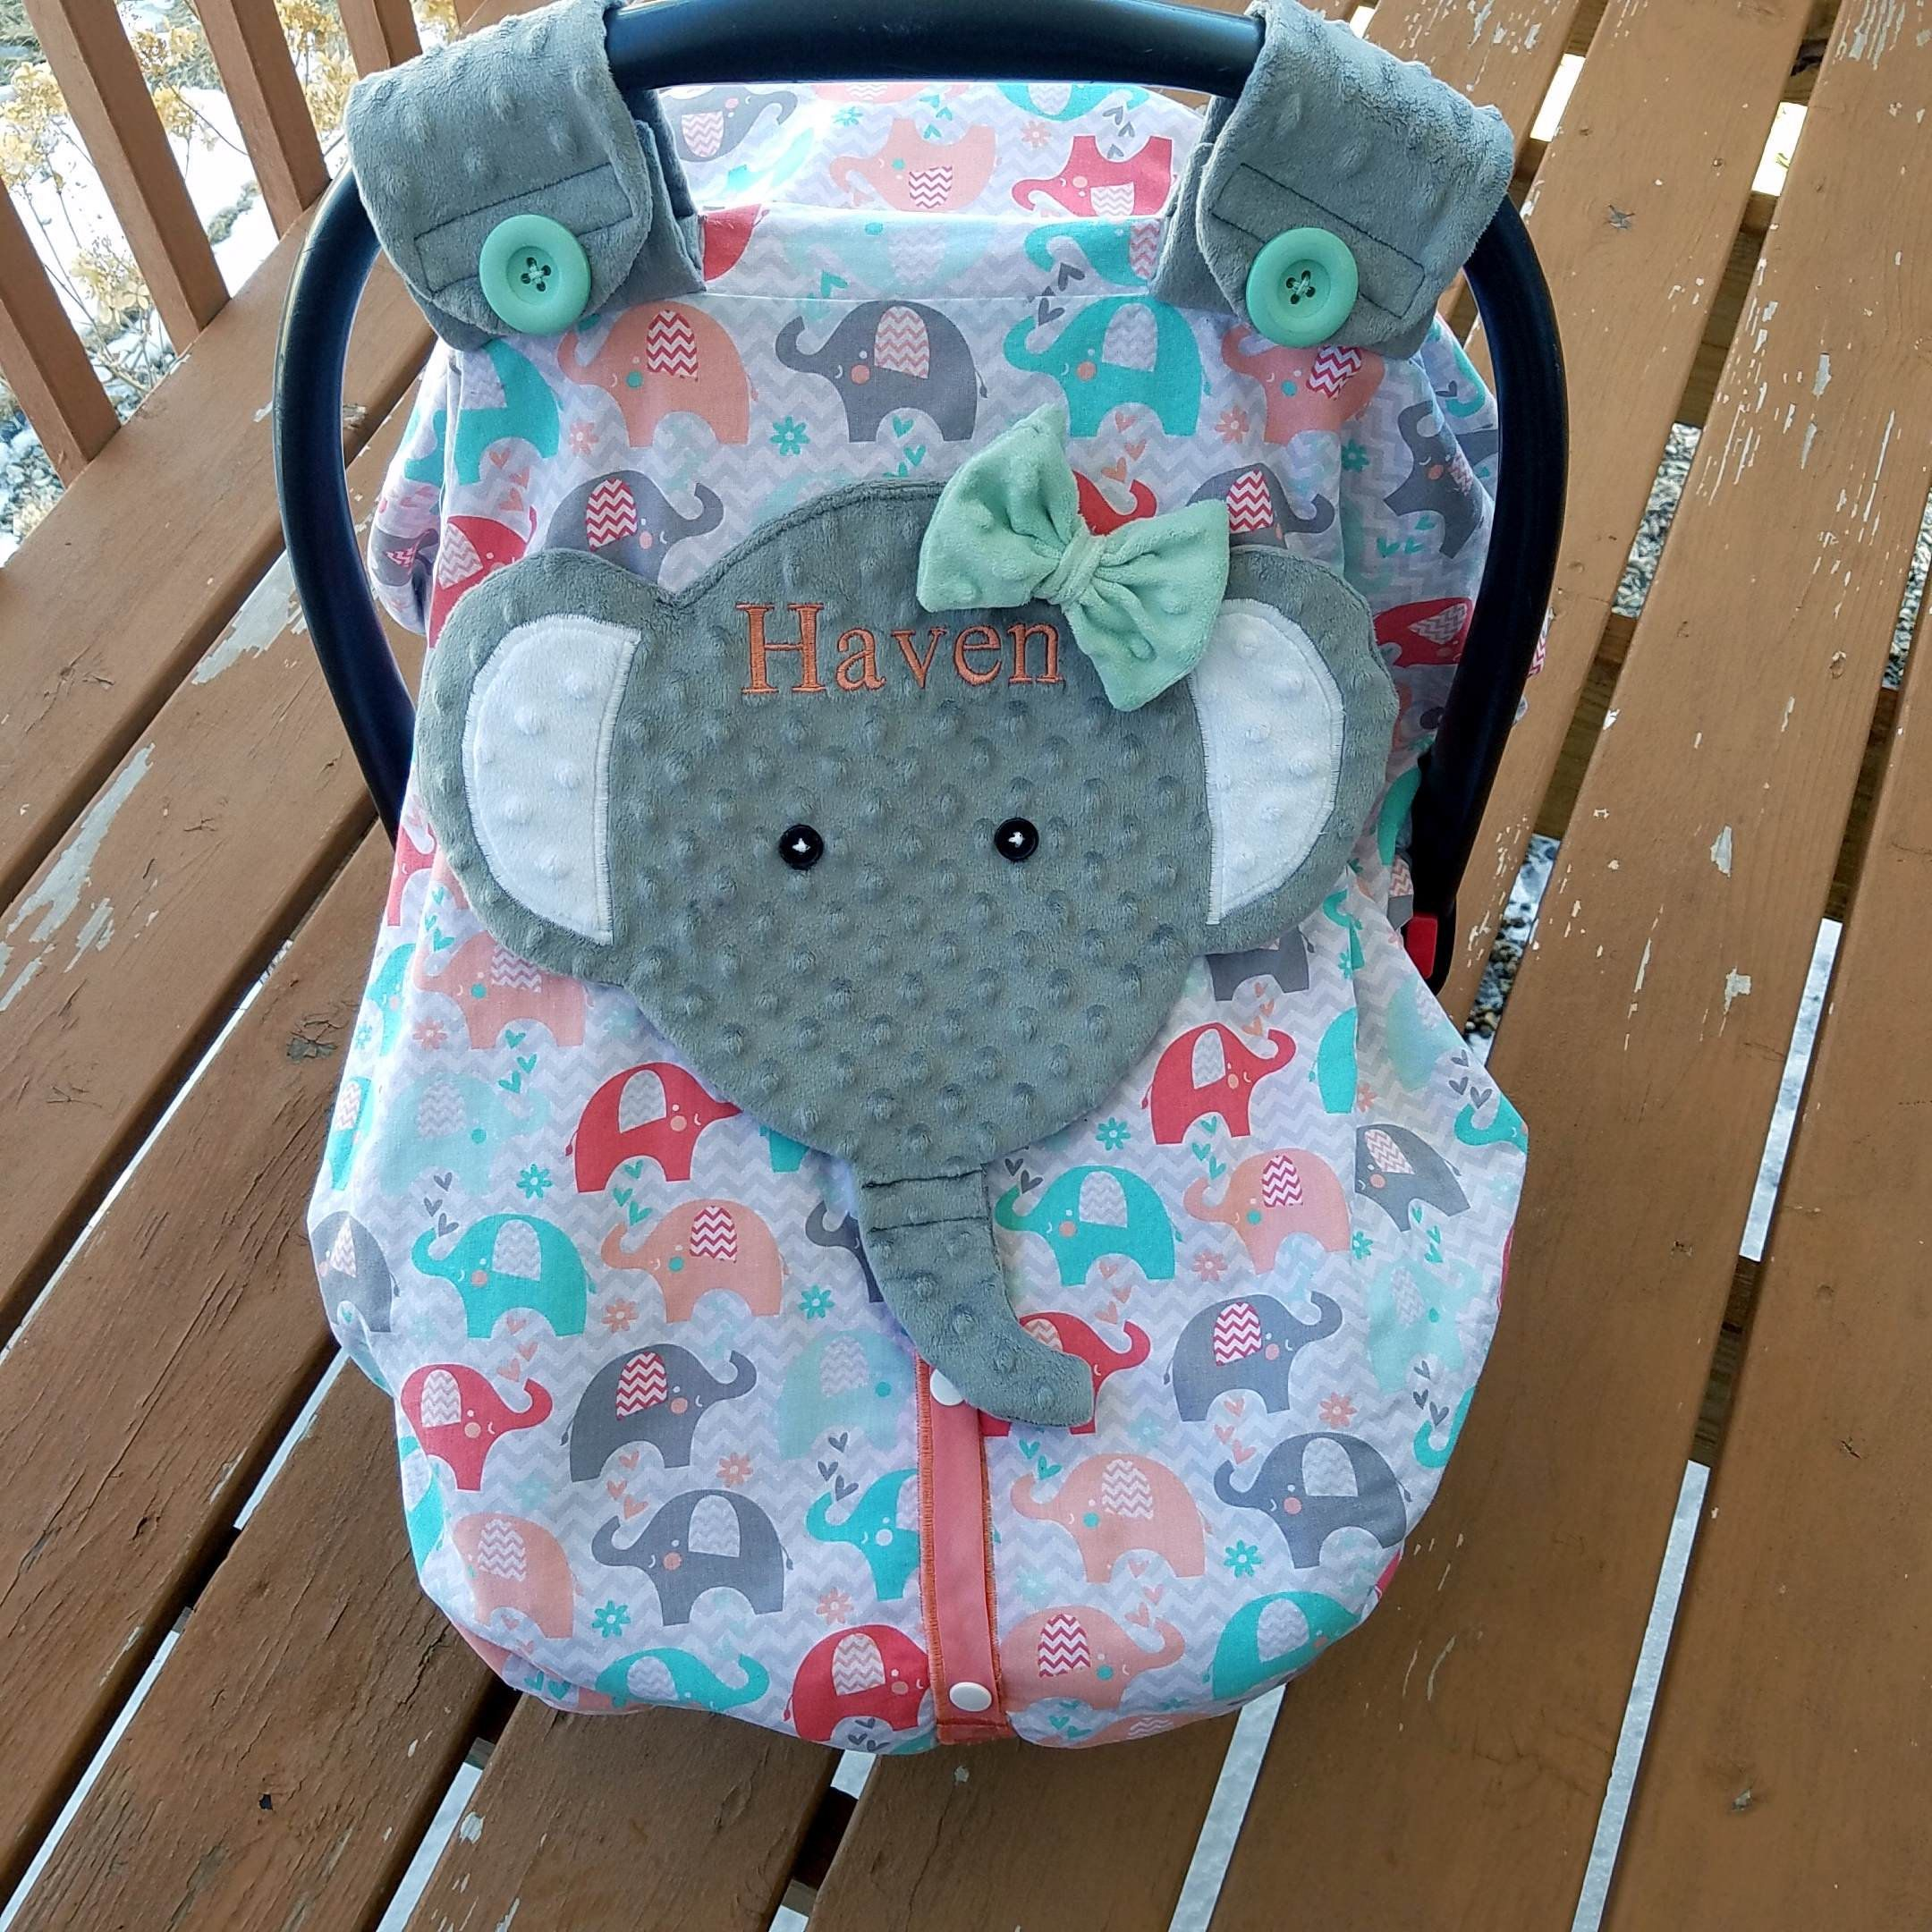 Made To Order Personalized Cotton And Minky Fitted Elephant Car Seat Canopy With Peek A Boo Opening Plus Snap